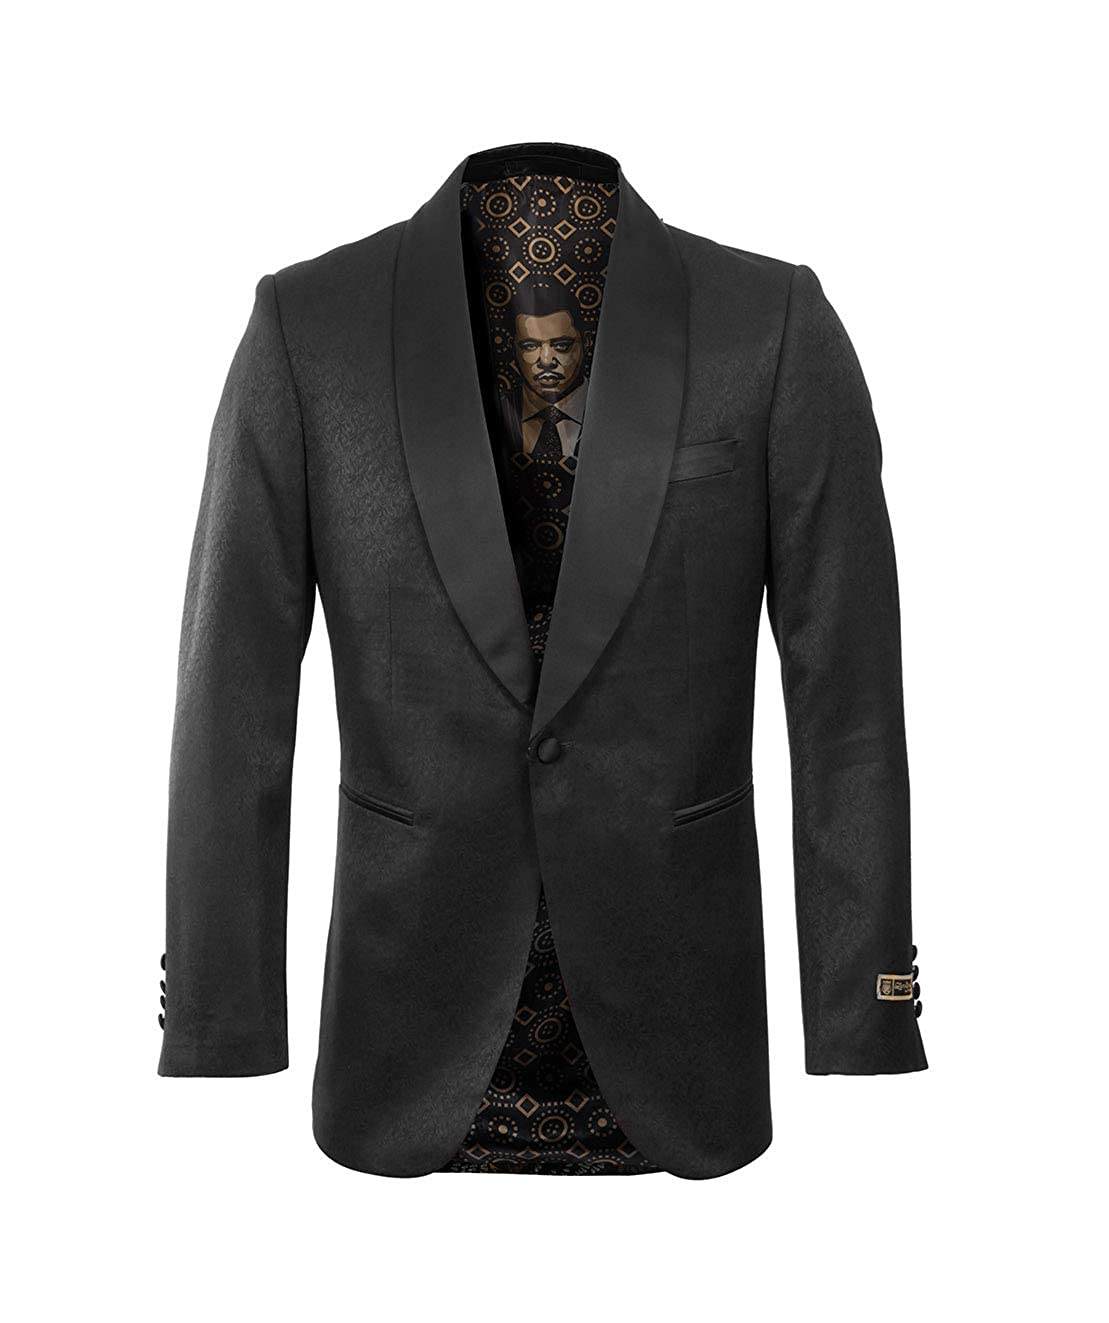 Mens Hybrid Fit Paisley Satin Shawl Lapel Dinner Jacket